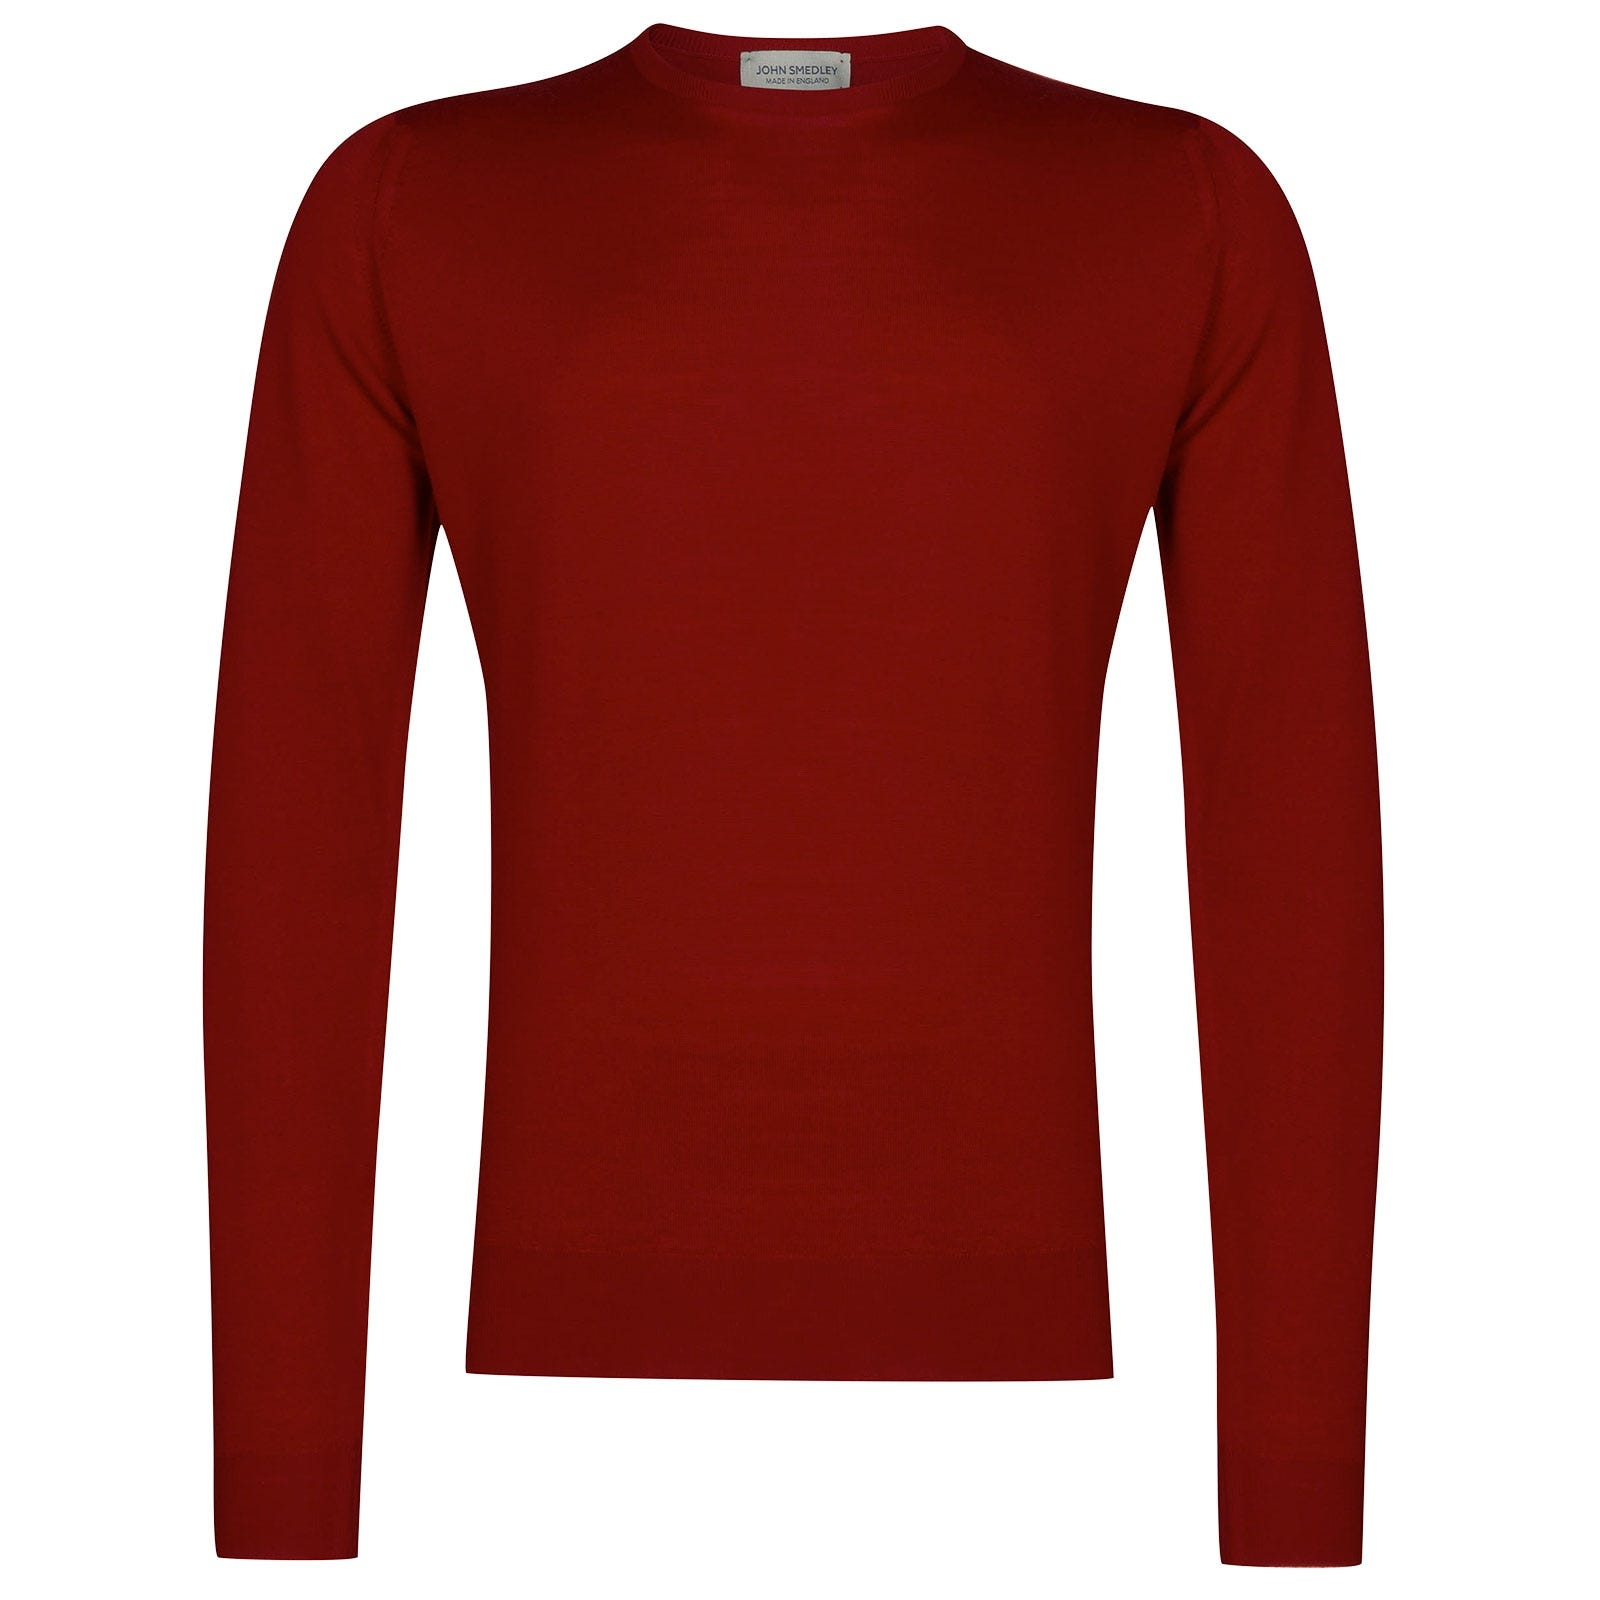 John Smedley Lundy Merino Wool Pullover in Thermal Red-XL